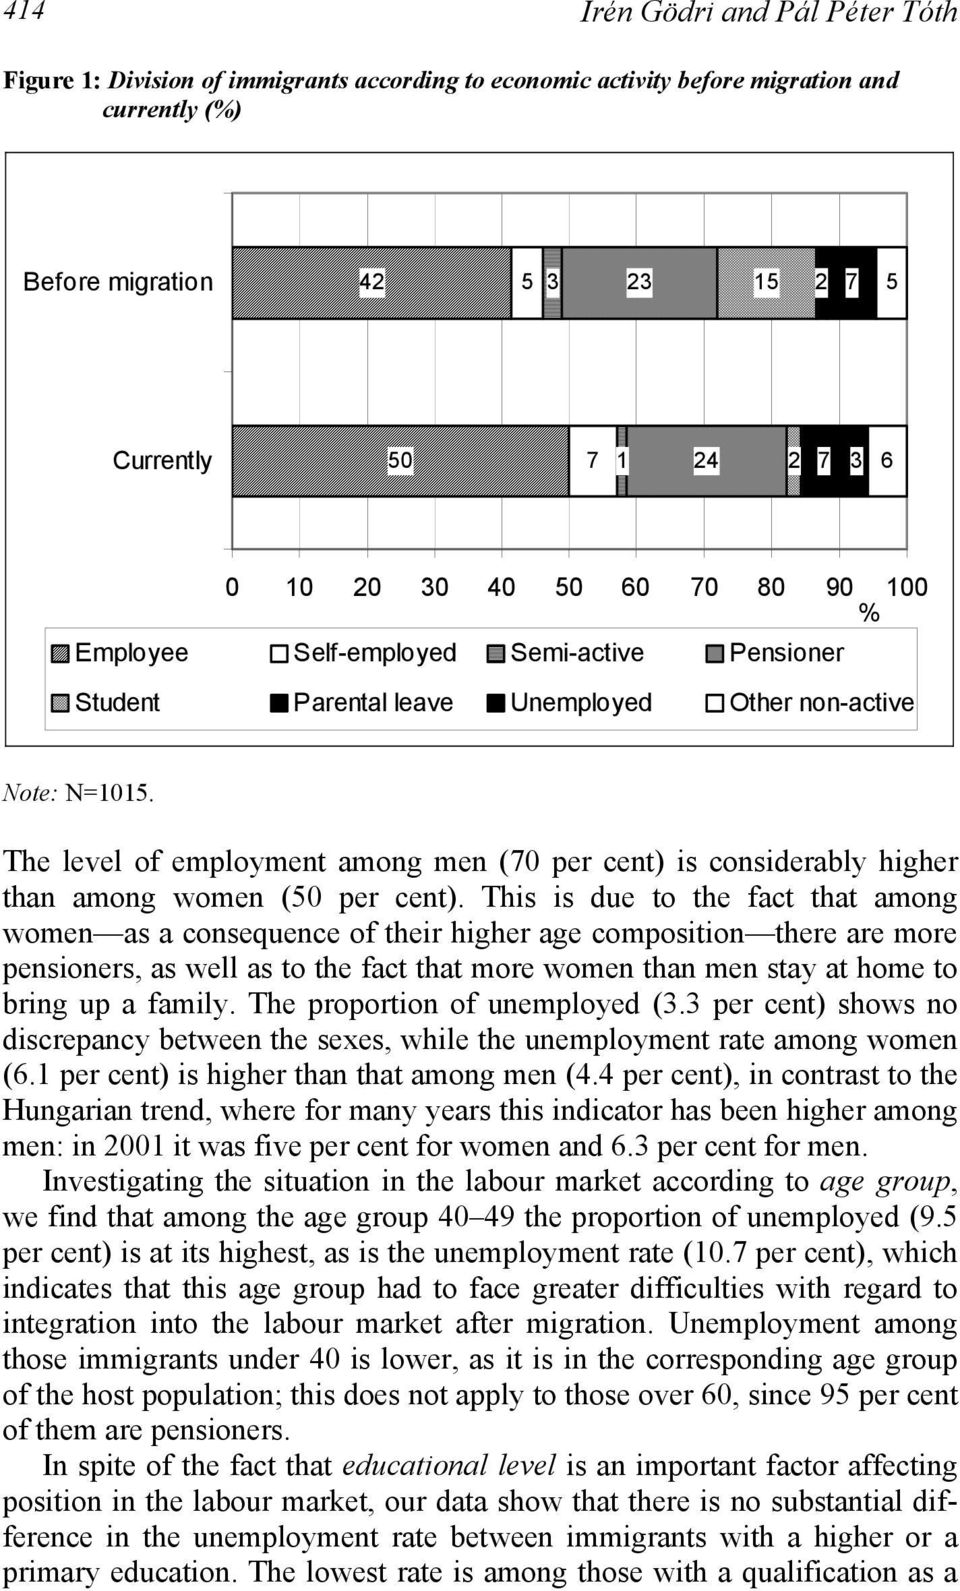 The level of employment among men (70 per cent) is considerably higher than among women (50 per cent).